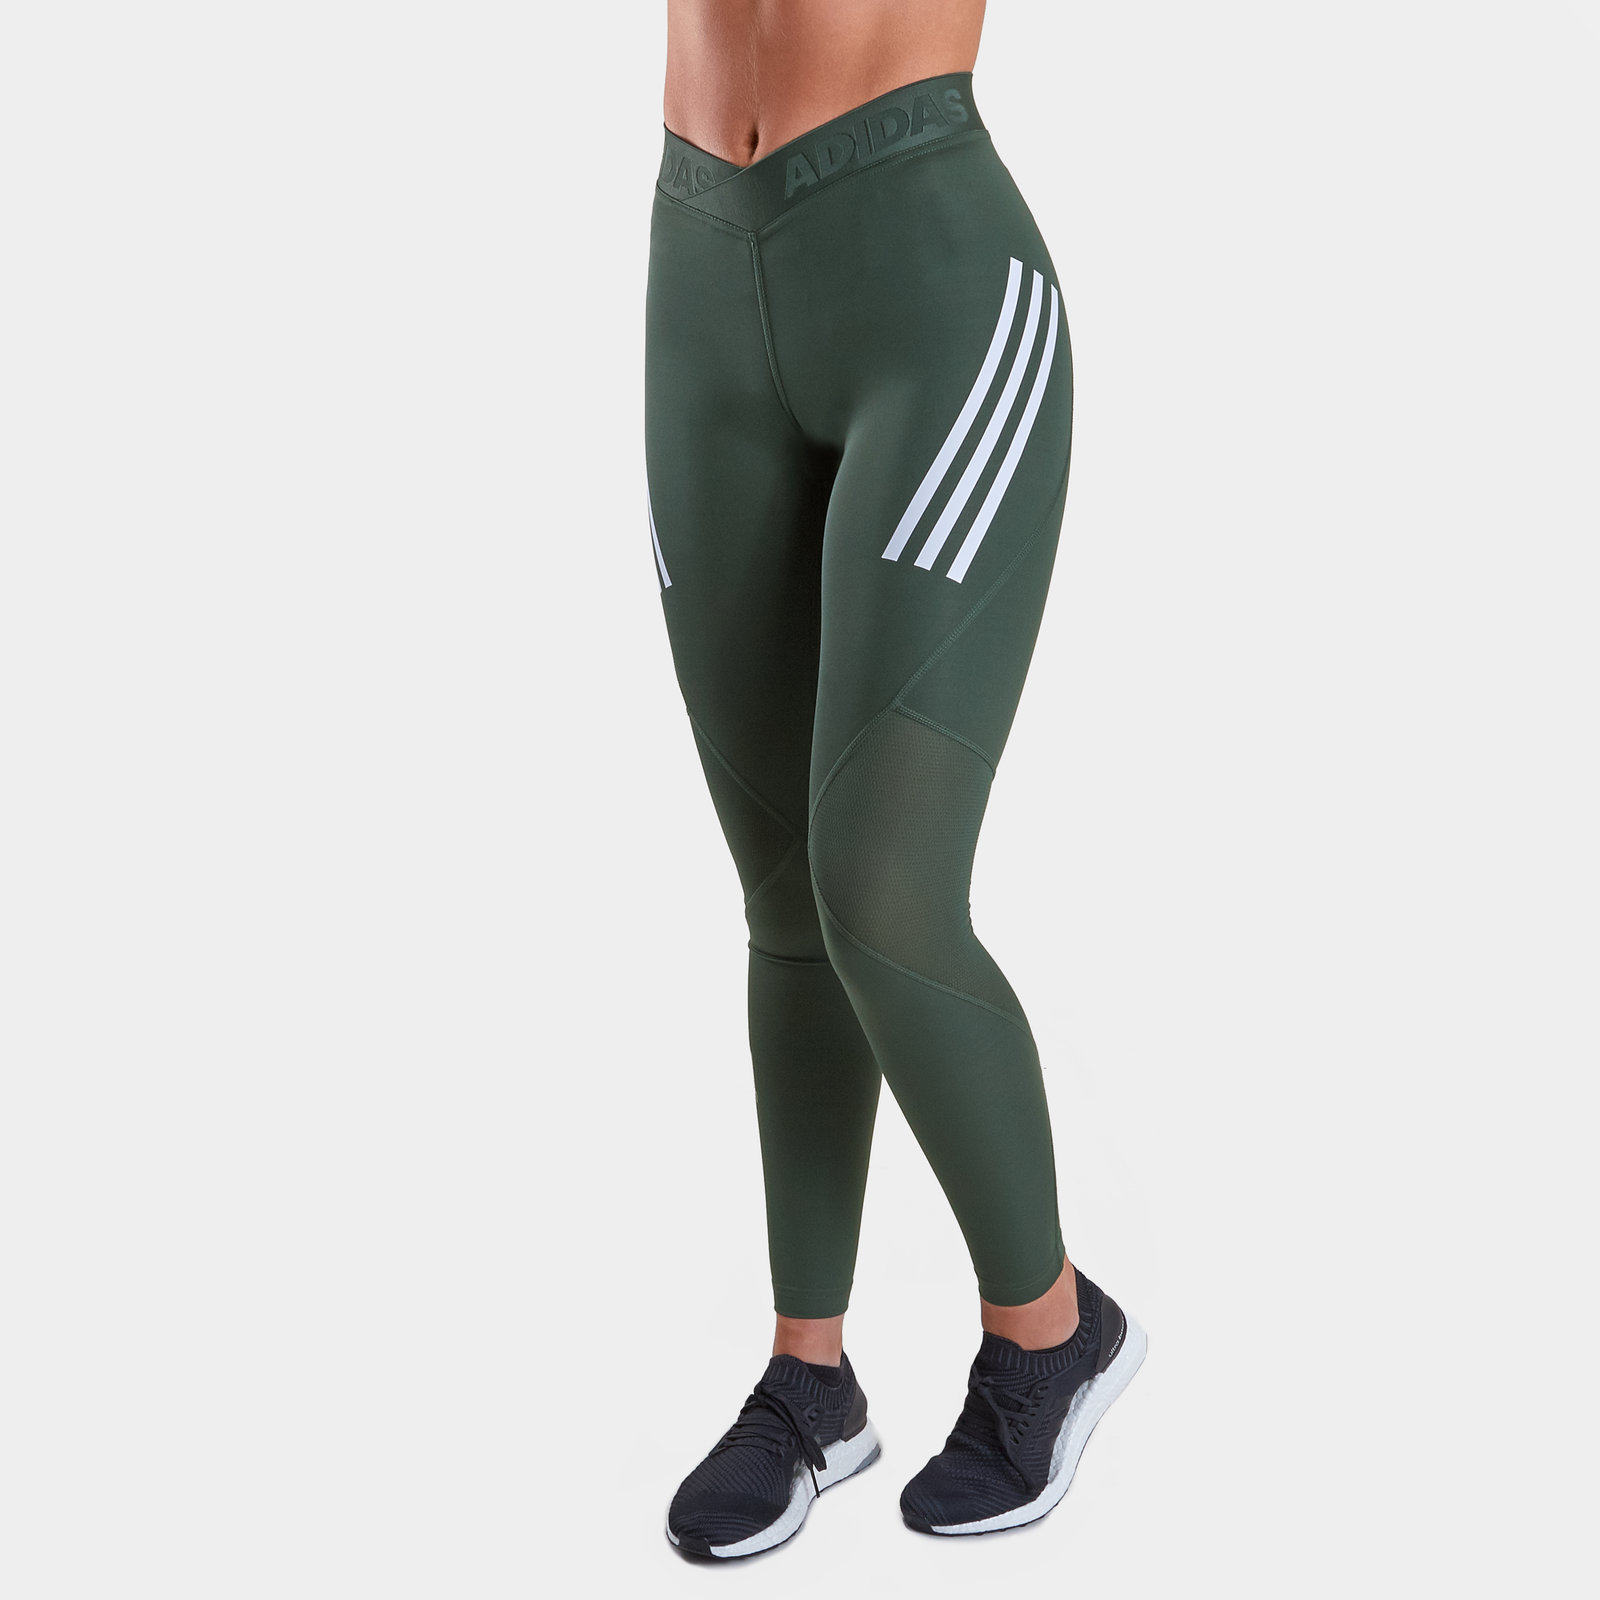 Freundschaftlich Adidas Womens Alphaskin Sport Ladies 3 Stripes Long Tights Green